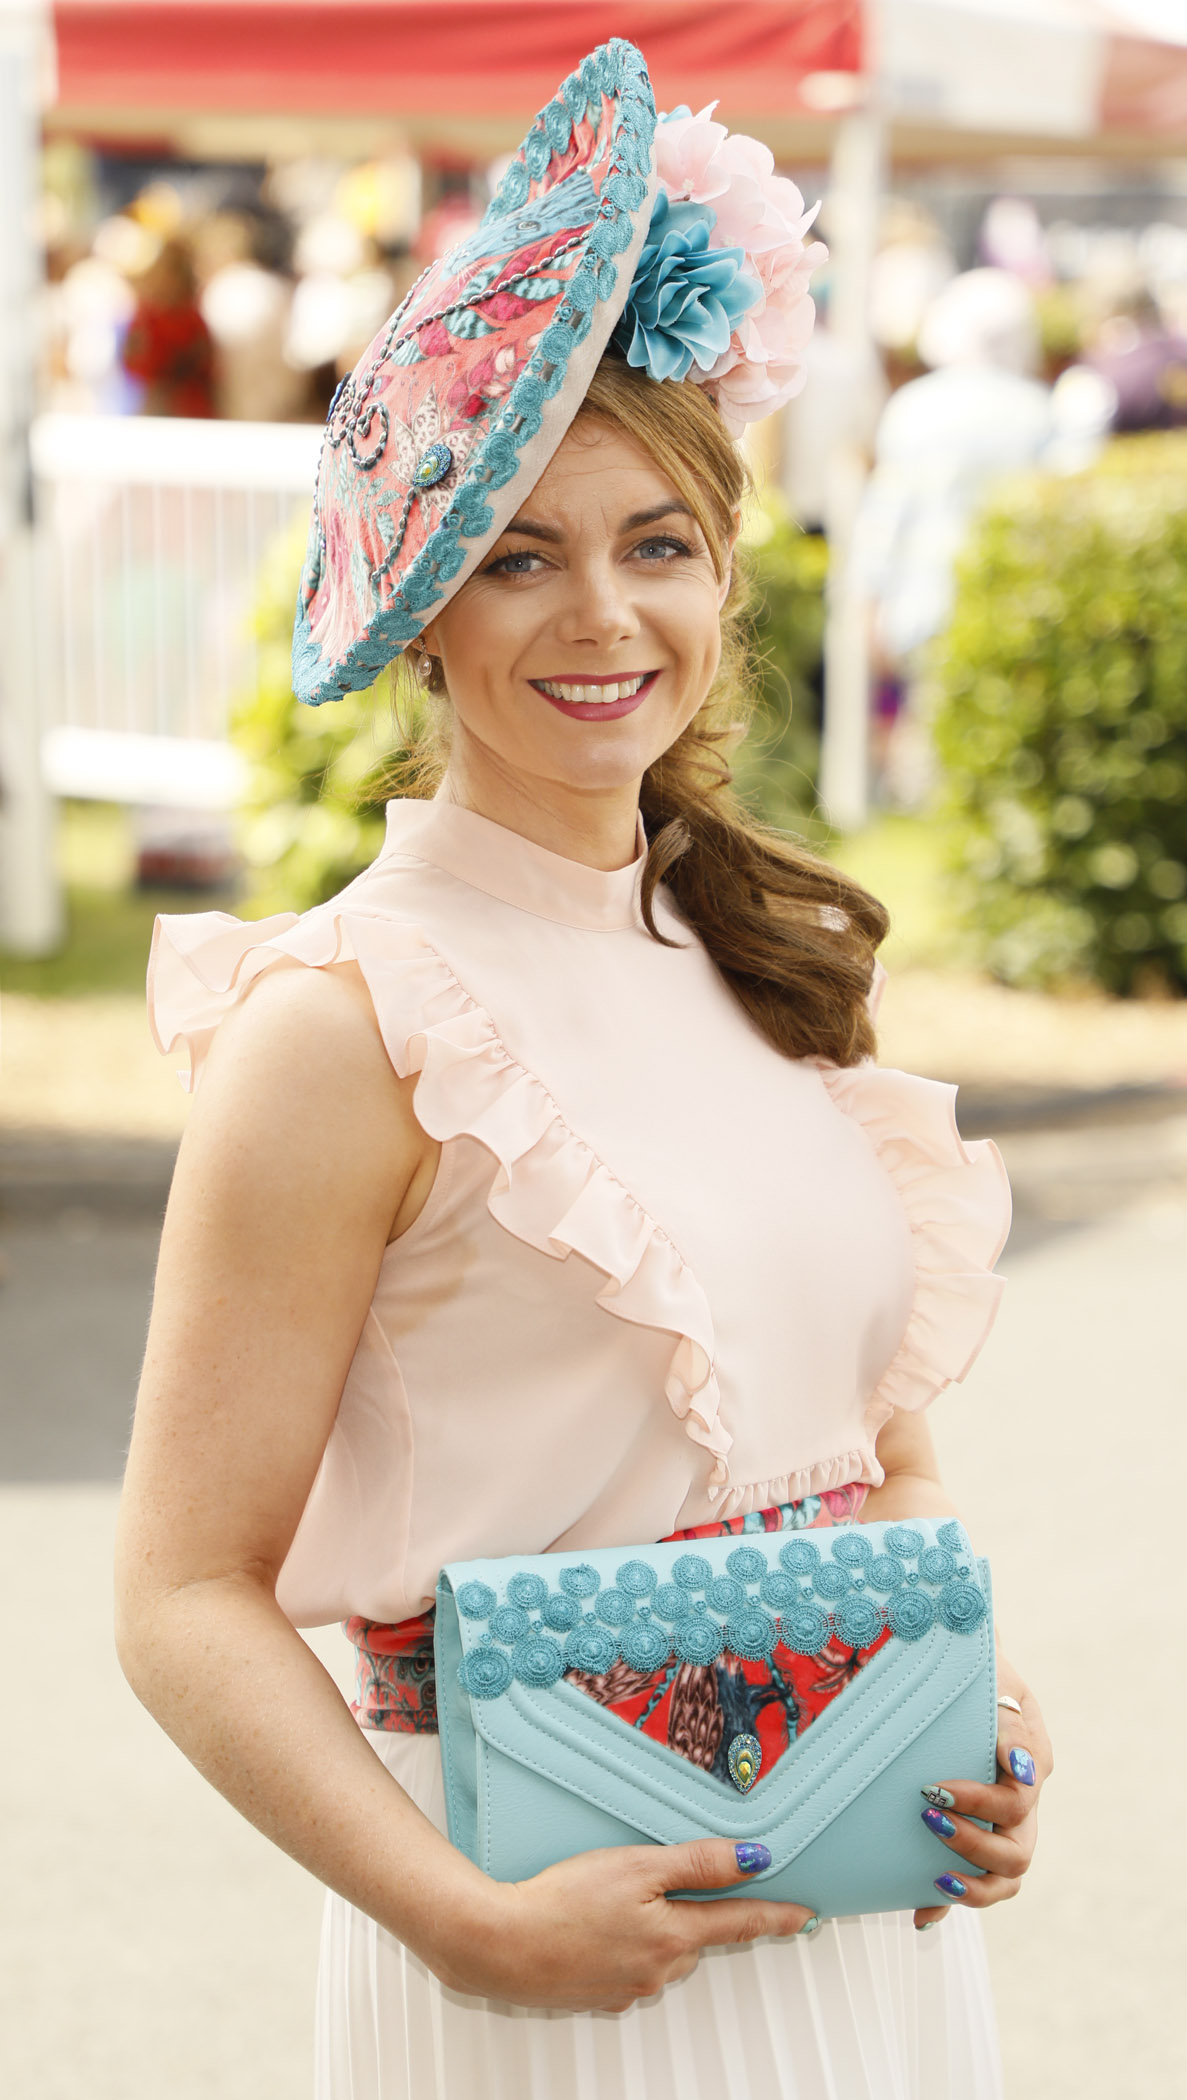 Stephanie McGrath at the Dundrum Town Centre Ladies' Day at the Dublin Horse Show in the RDS. Photo: Kieran Harnett